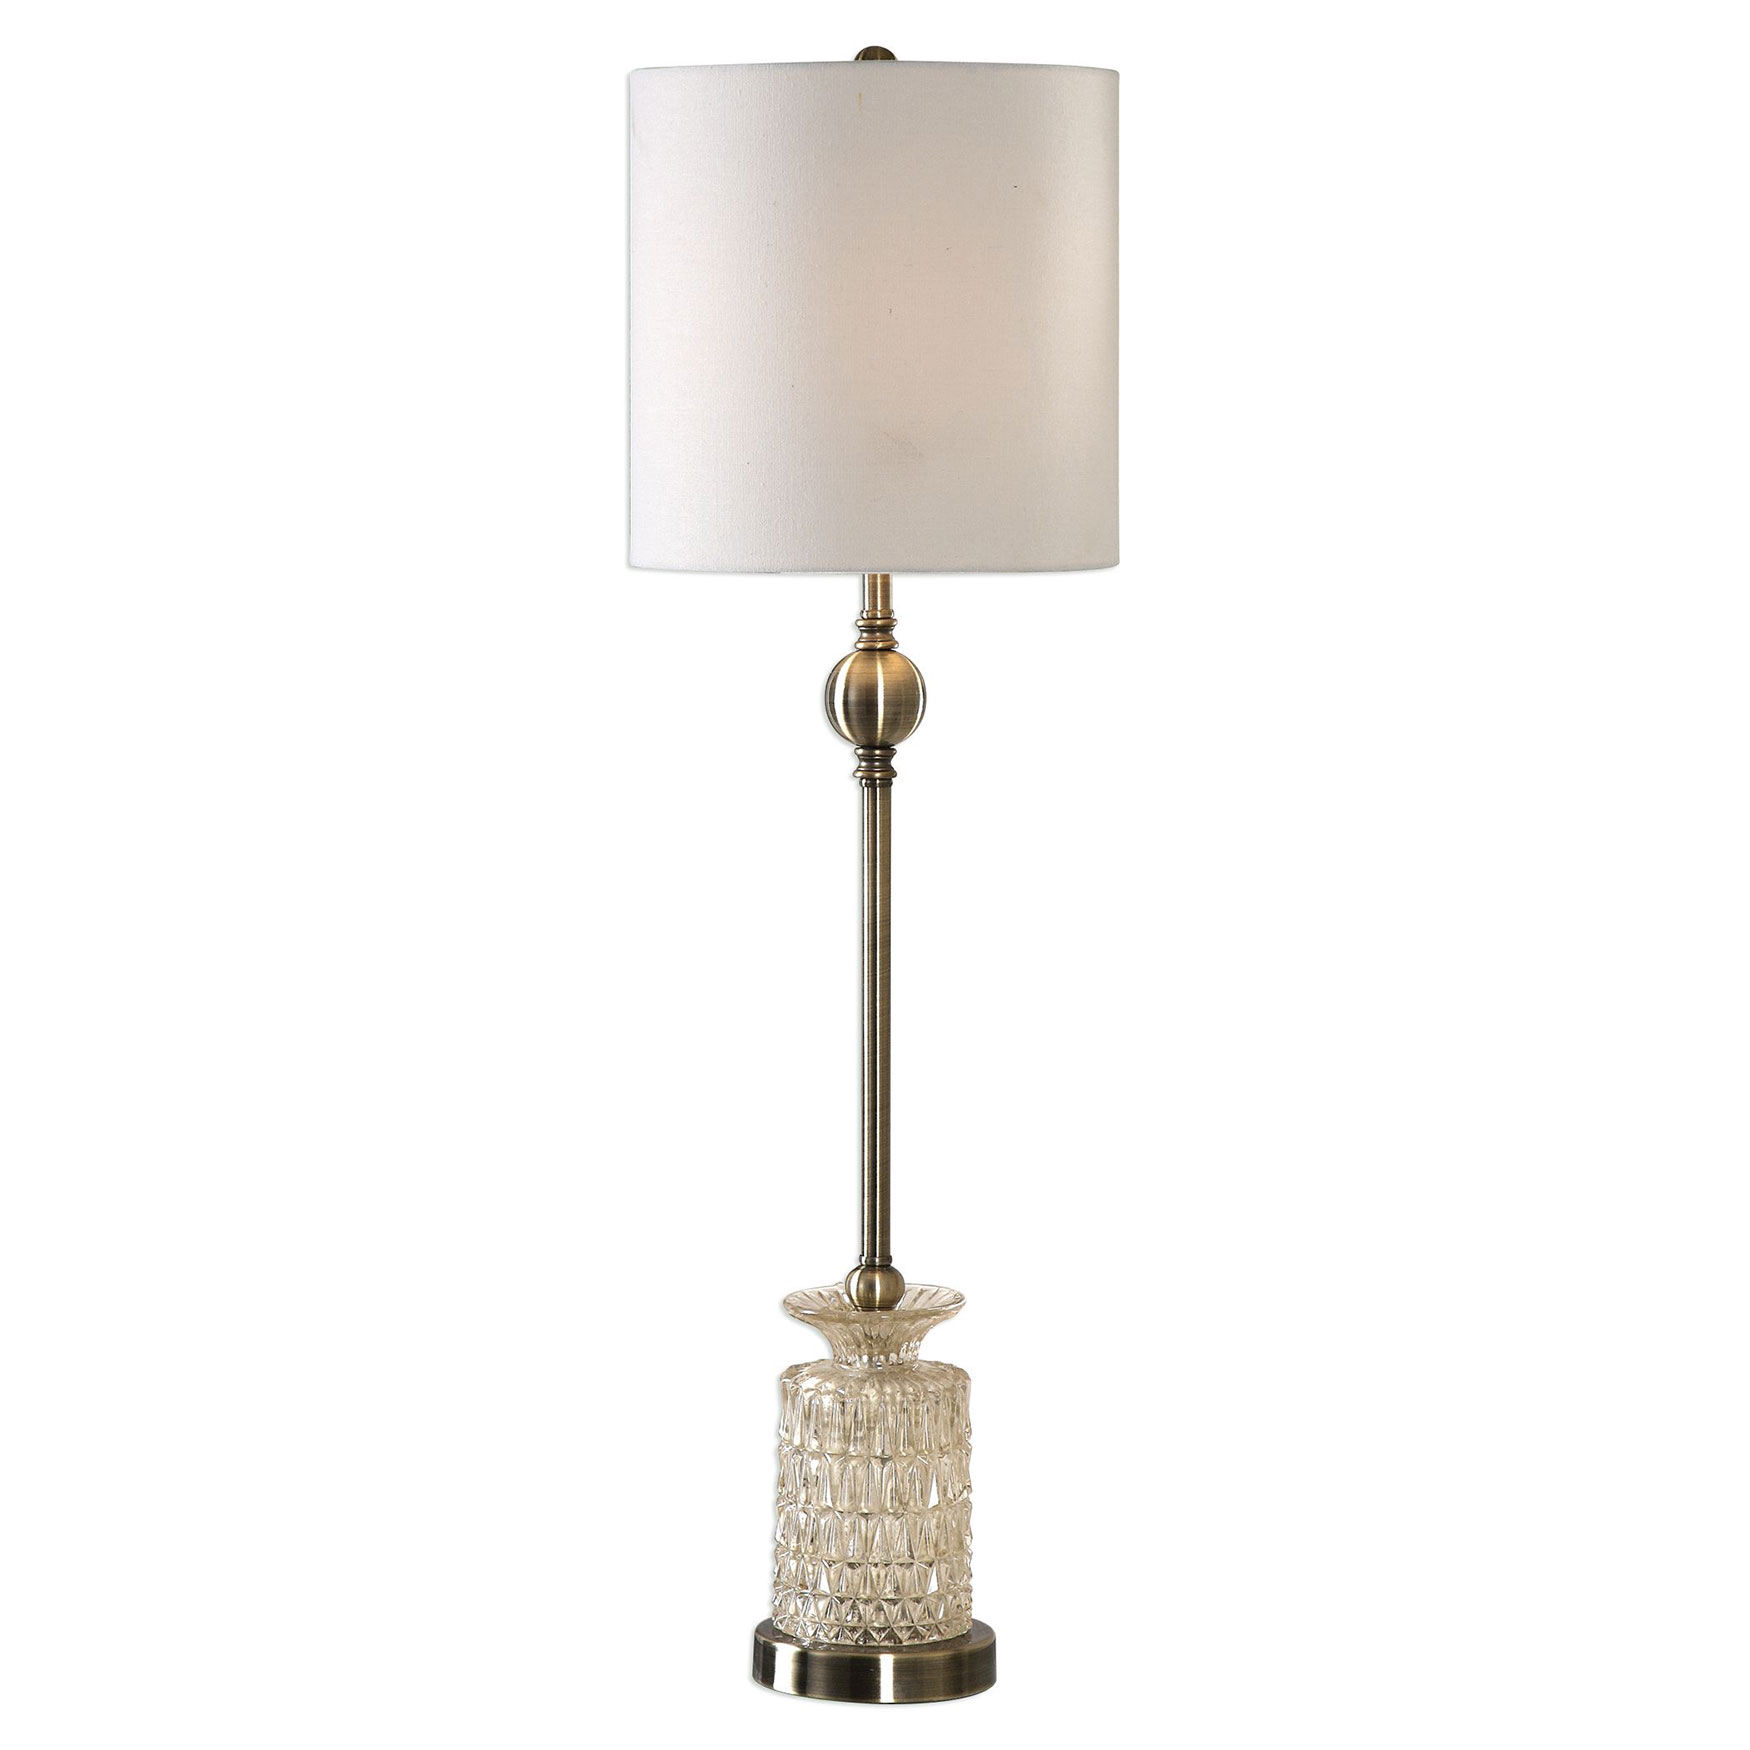 Flaviana Antique Brass Buffet Lamp, CHAMPAGNE